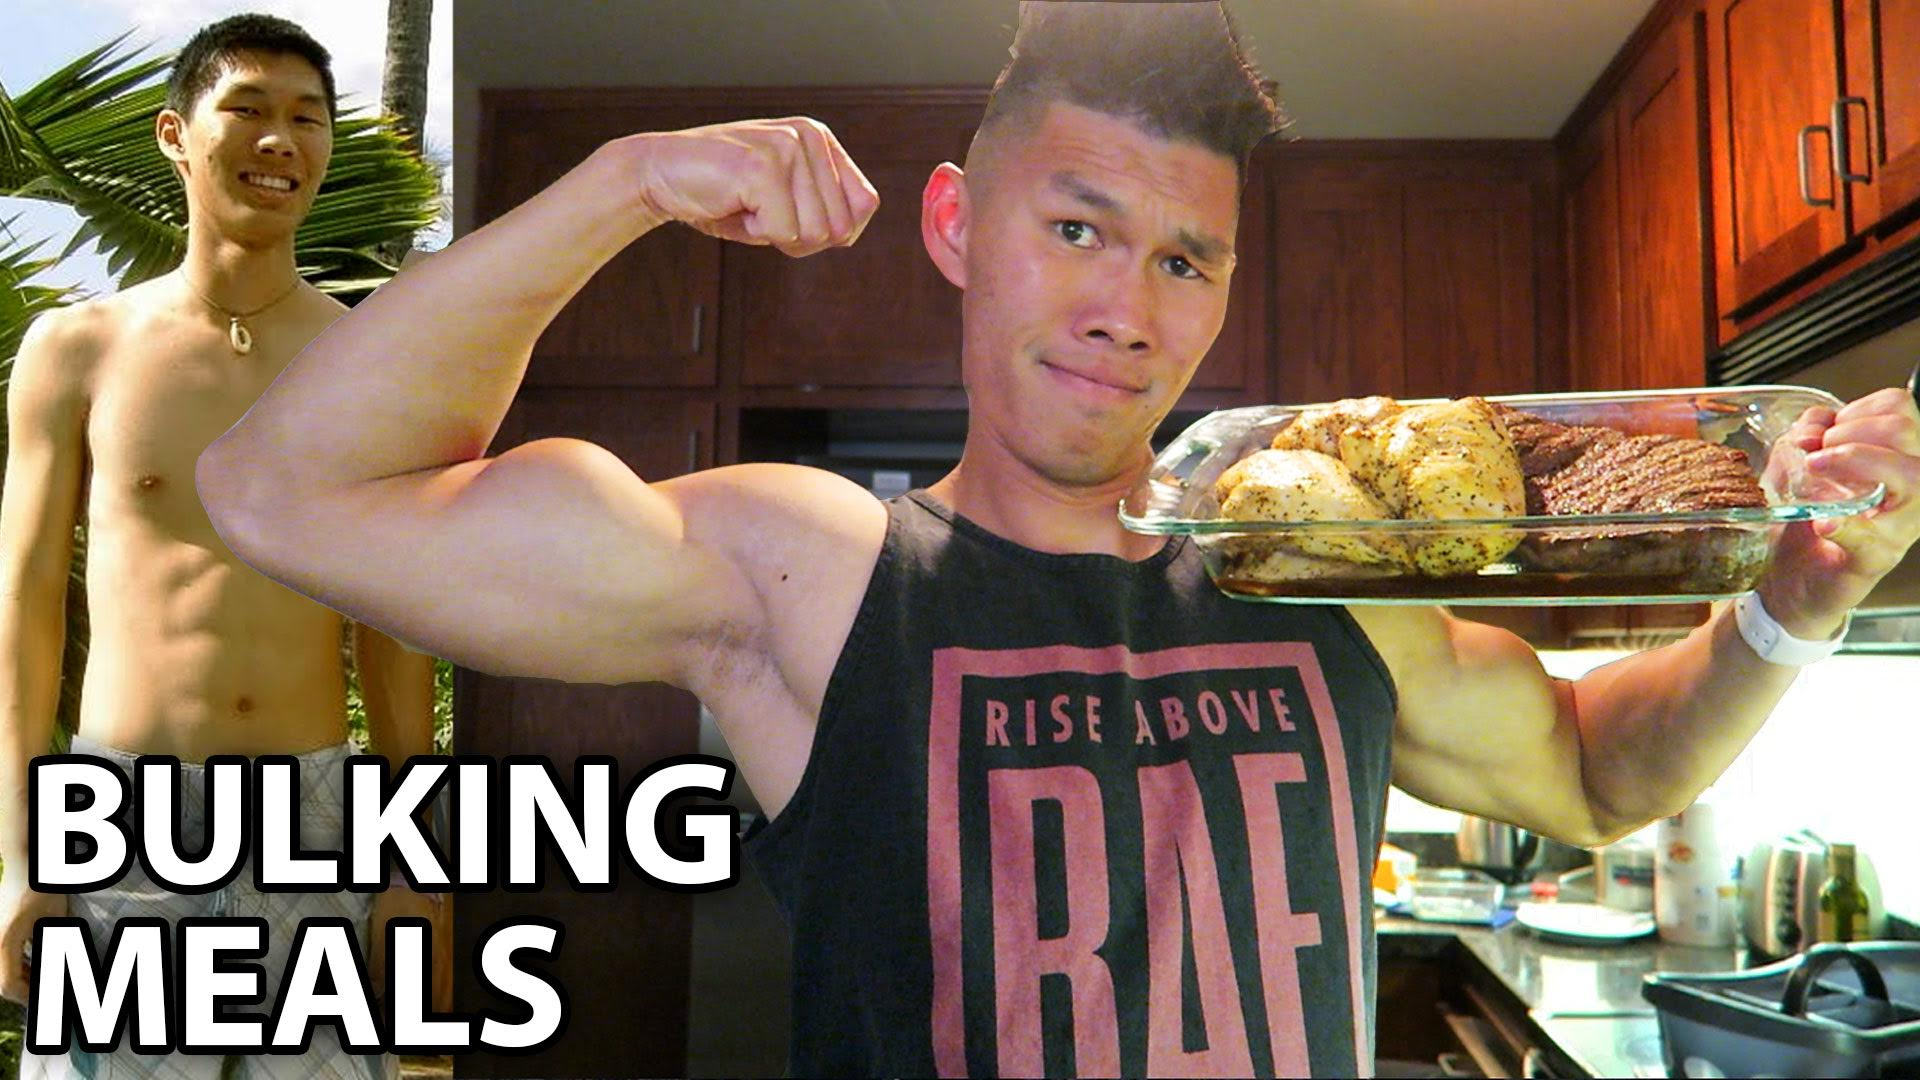 MY BULKING DIET MEALS TO GAIN MUSCLE - Life After College